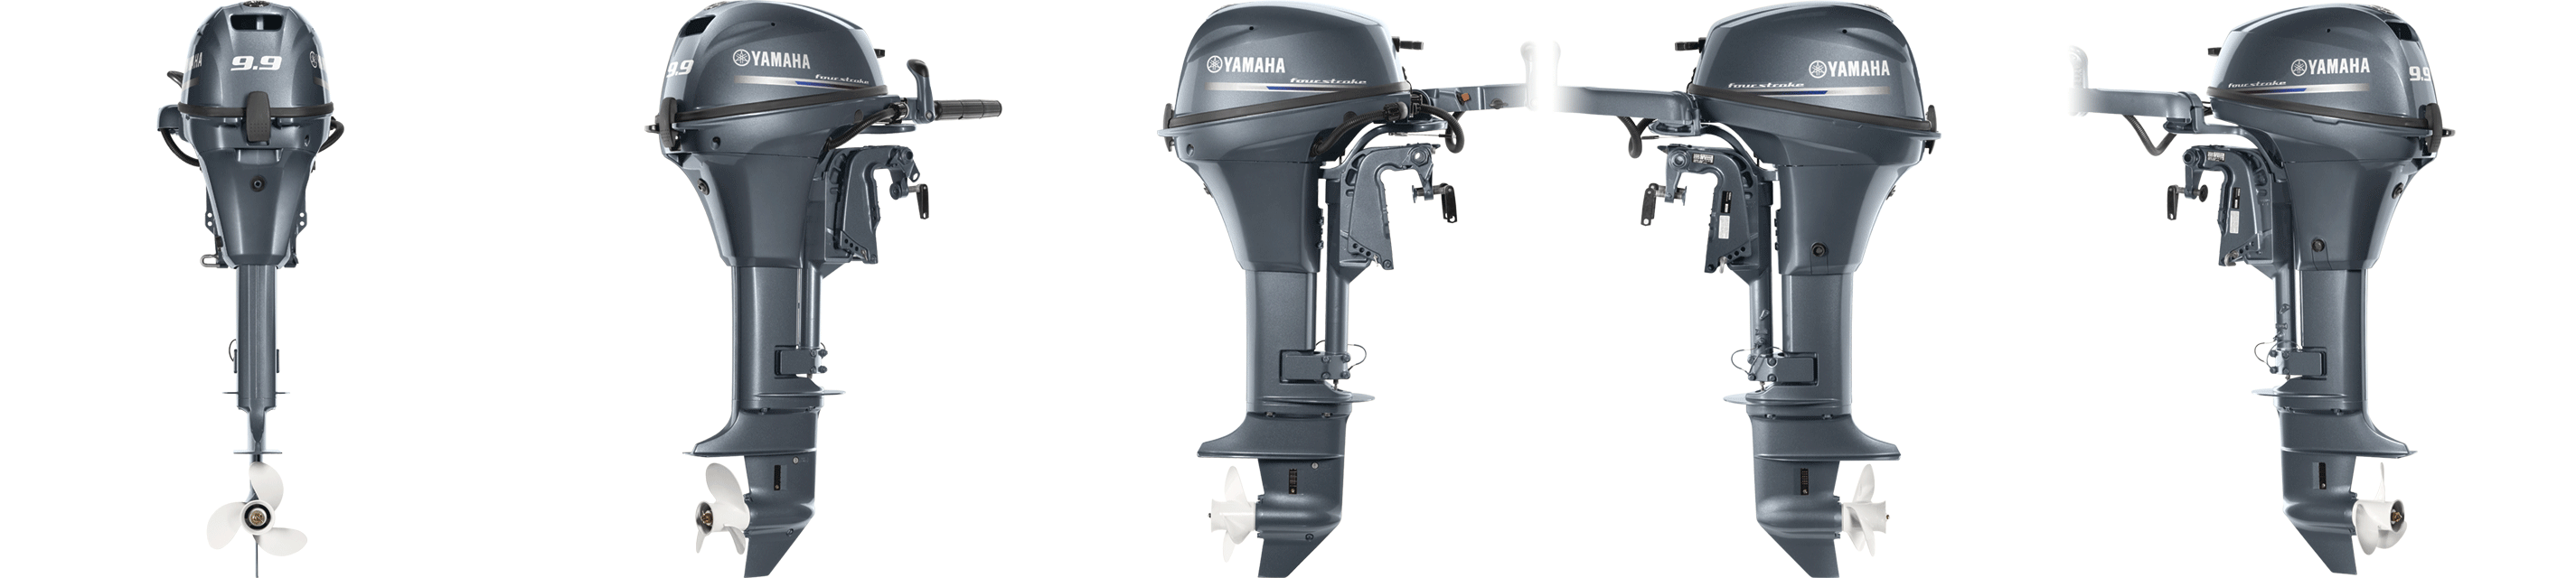 Outboards 99 And 8 Hp Portable Yamaha 9 Wiring Diagram Specs Compare